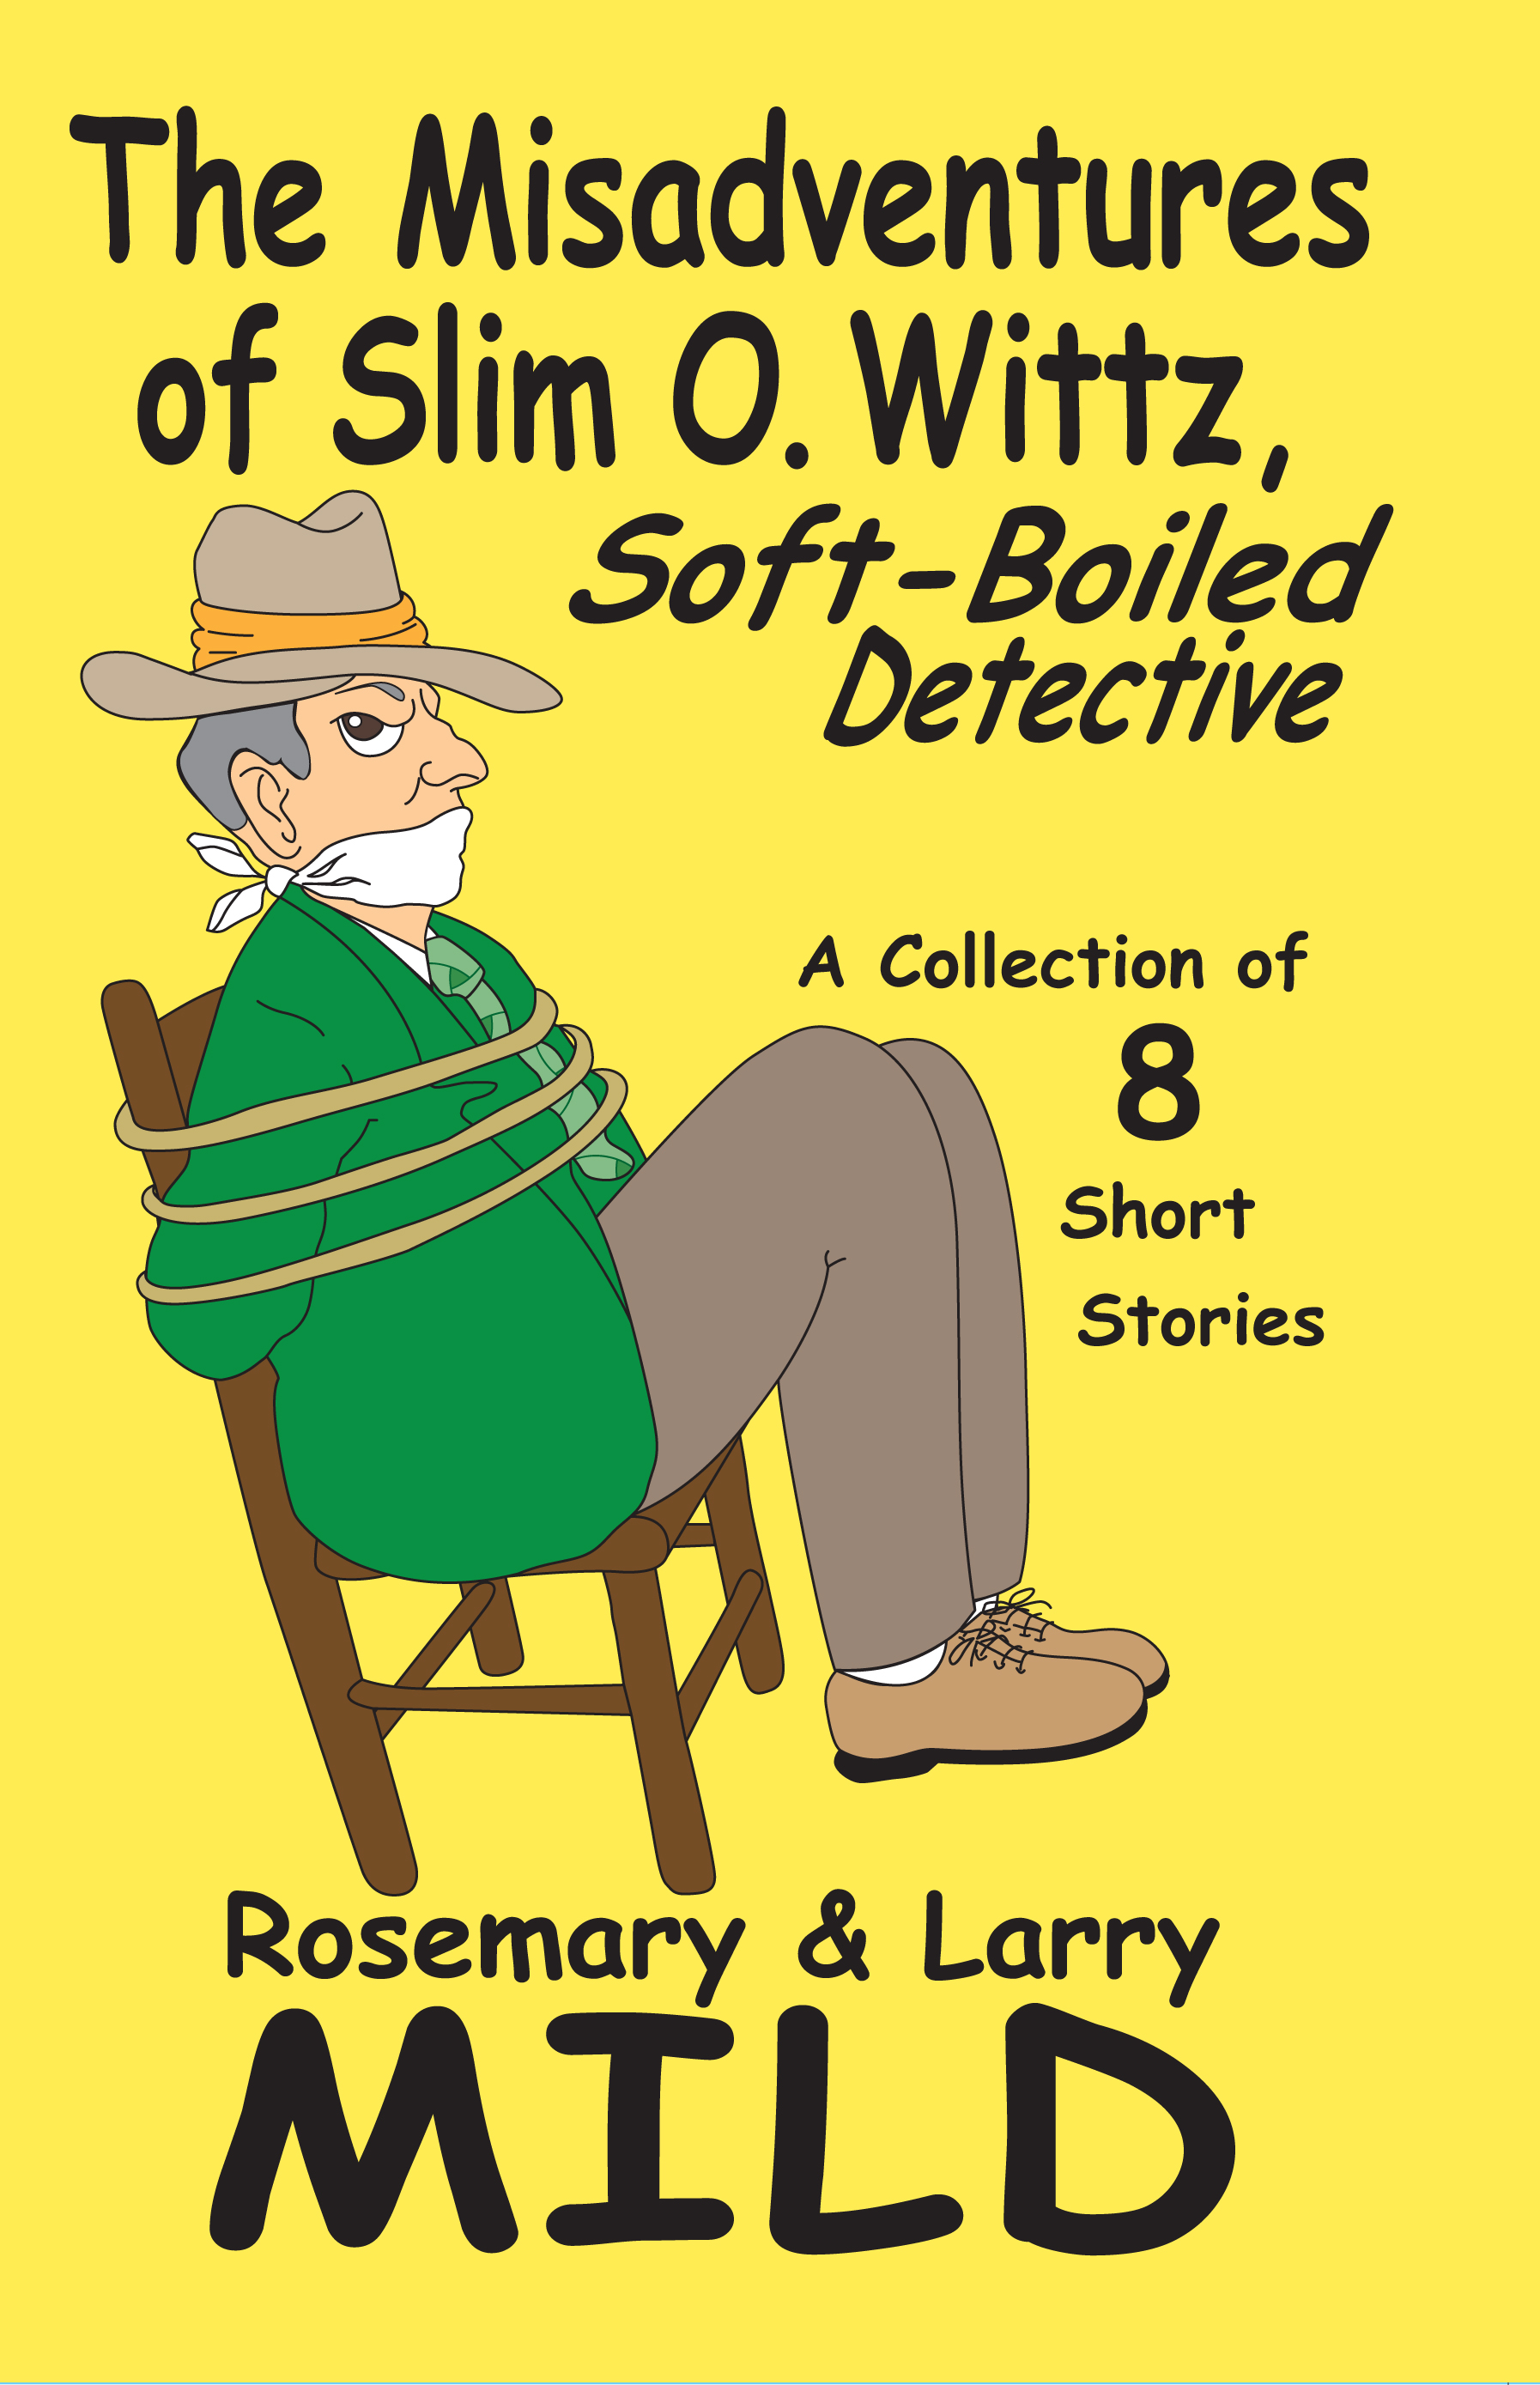 Slim O. Wittz, Soft-Boiled Detective by Larry and Rosemary Mild